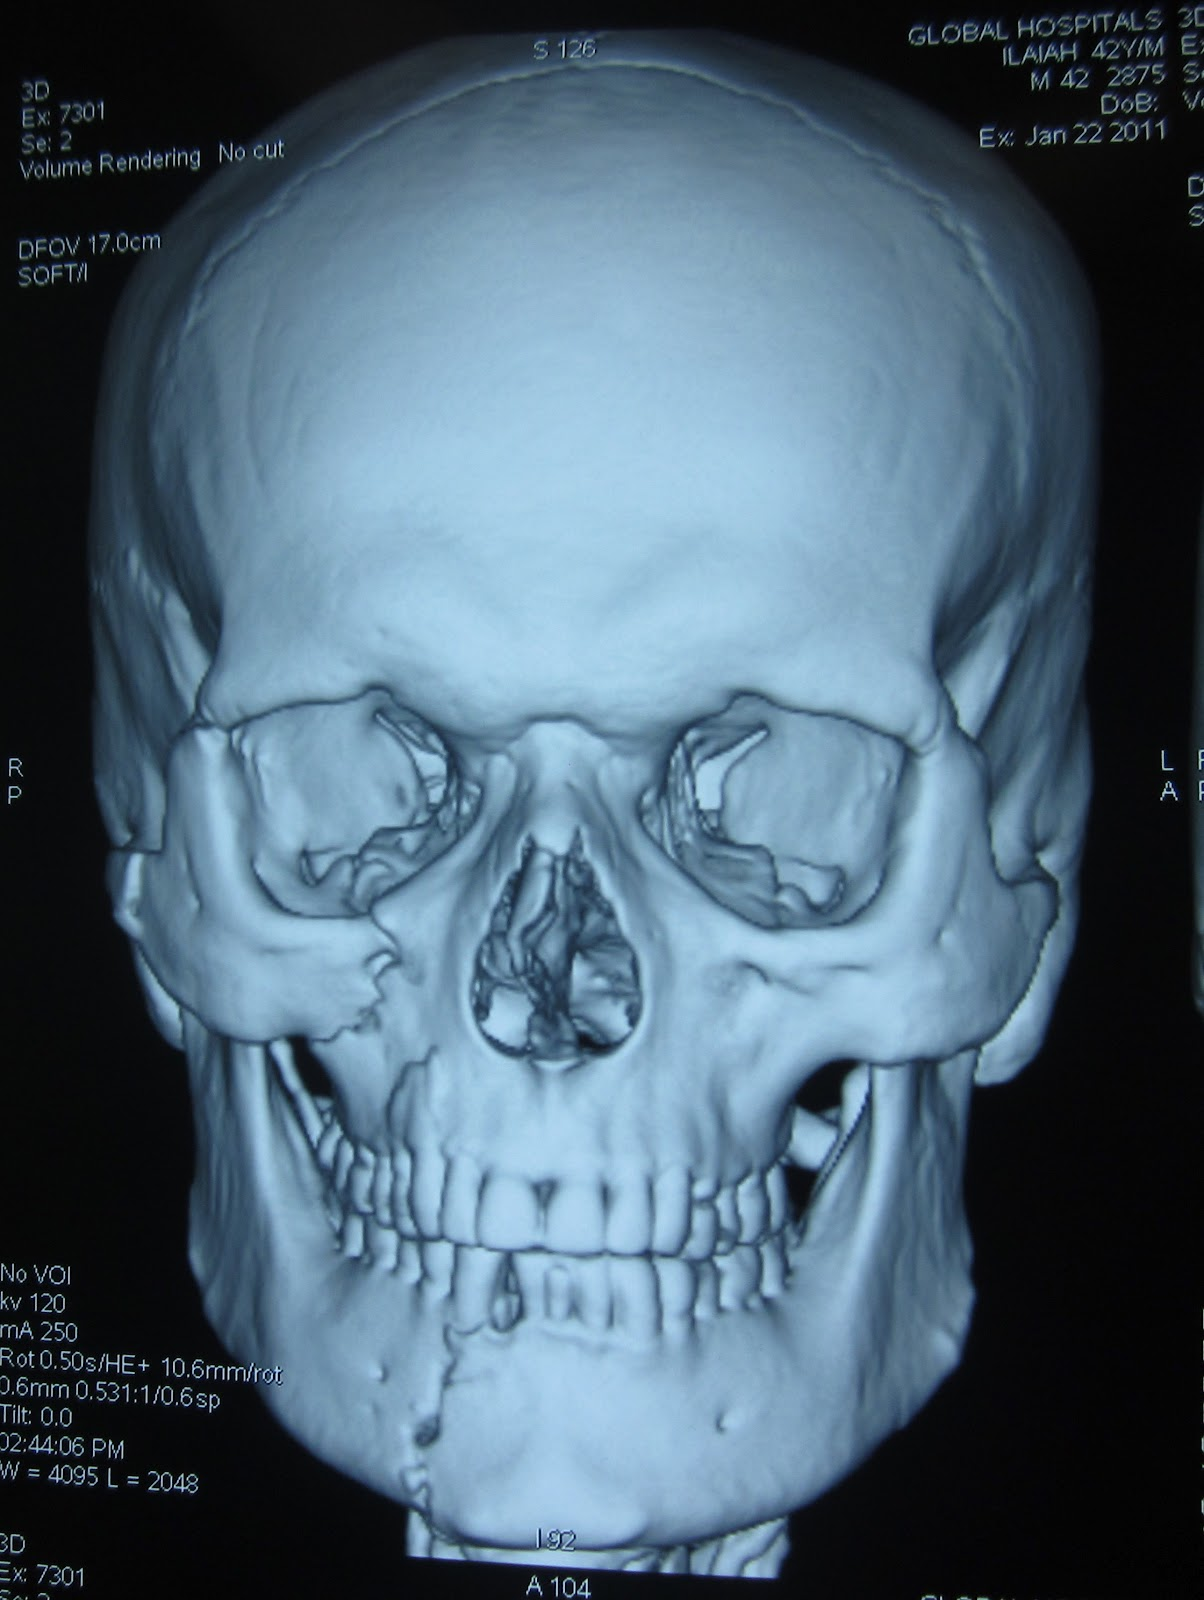 FRACTURE MANDIBLE + MINIMALLY DISPLACED FRACTURE ZYGOMA - ORIF OUTCOME-1.bp.blogspot.com